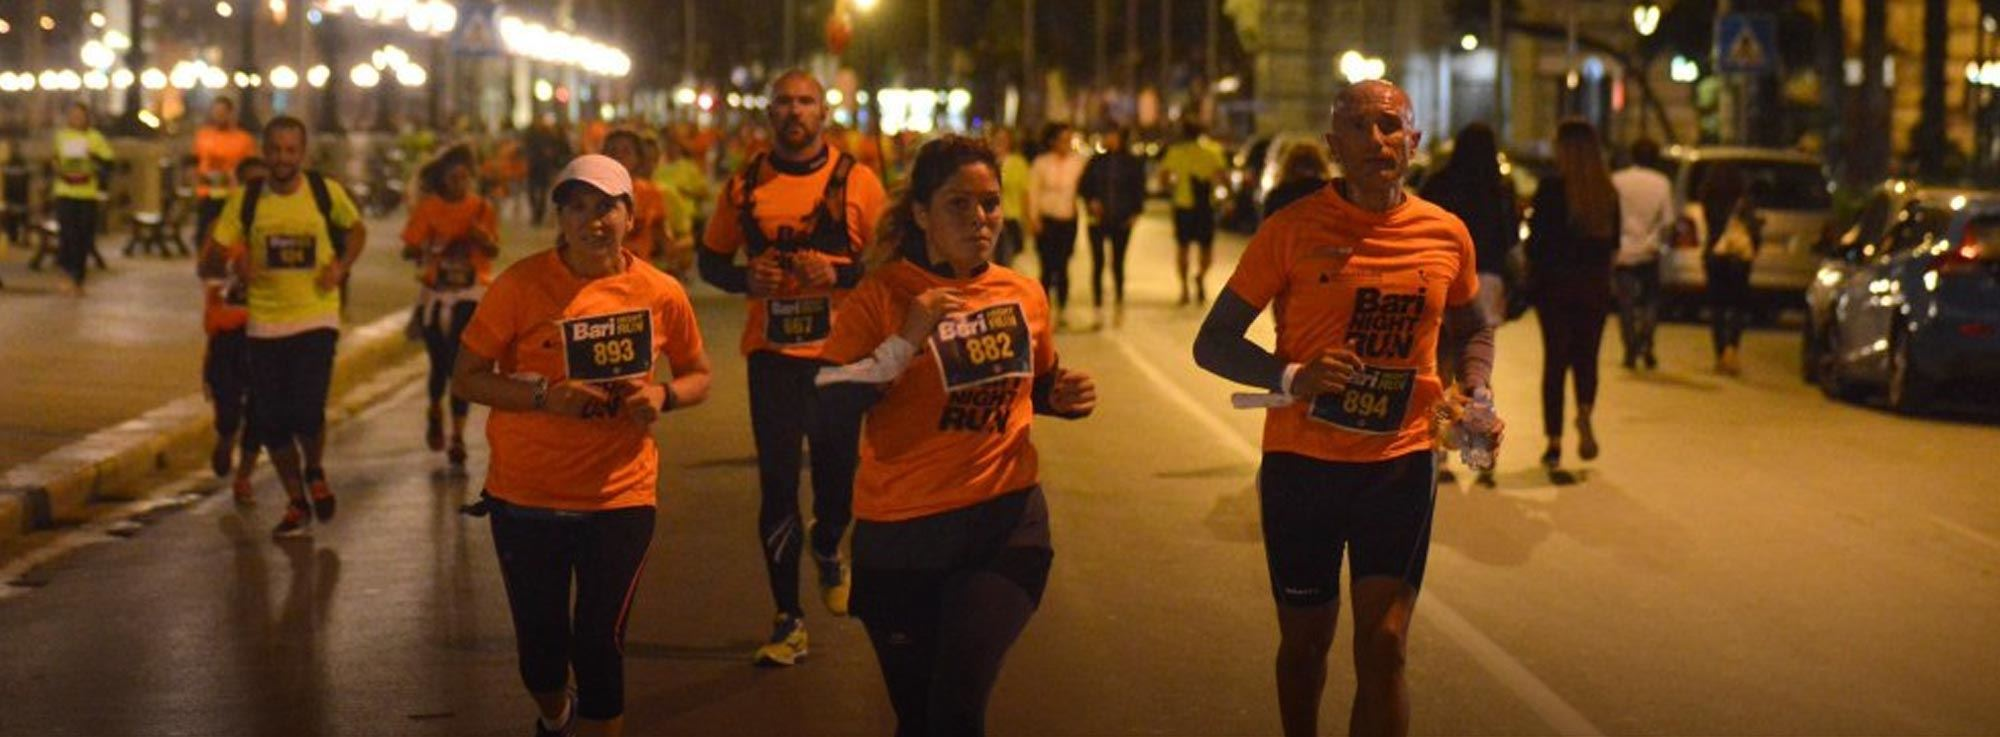 Bari: Bari Night Run